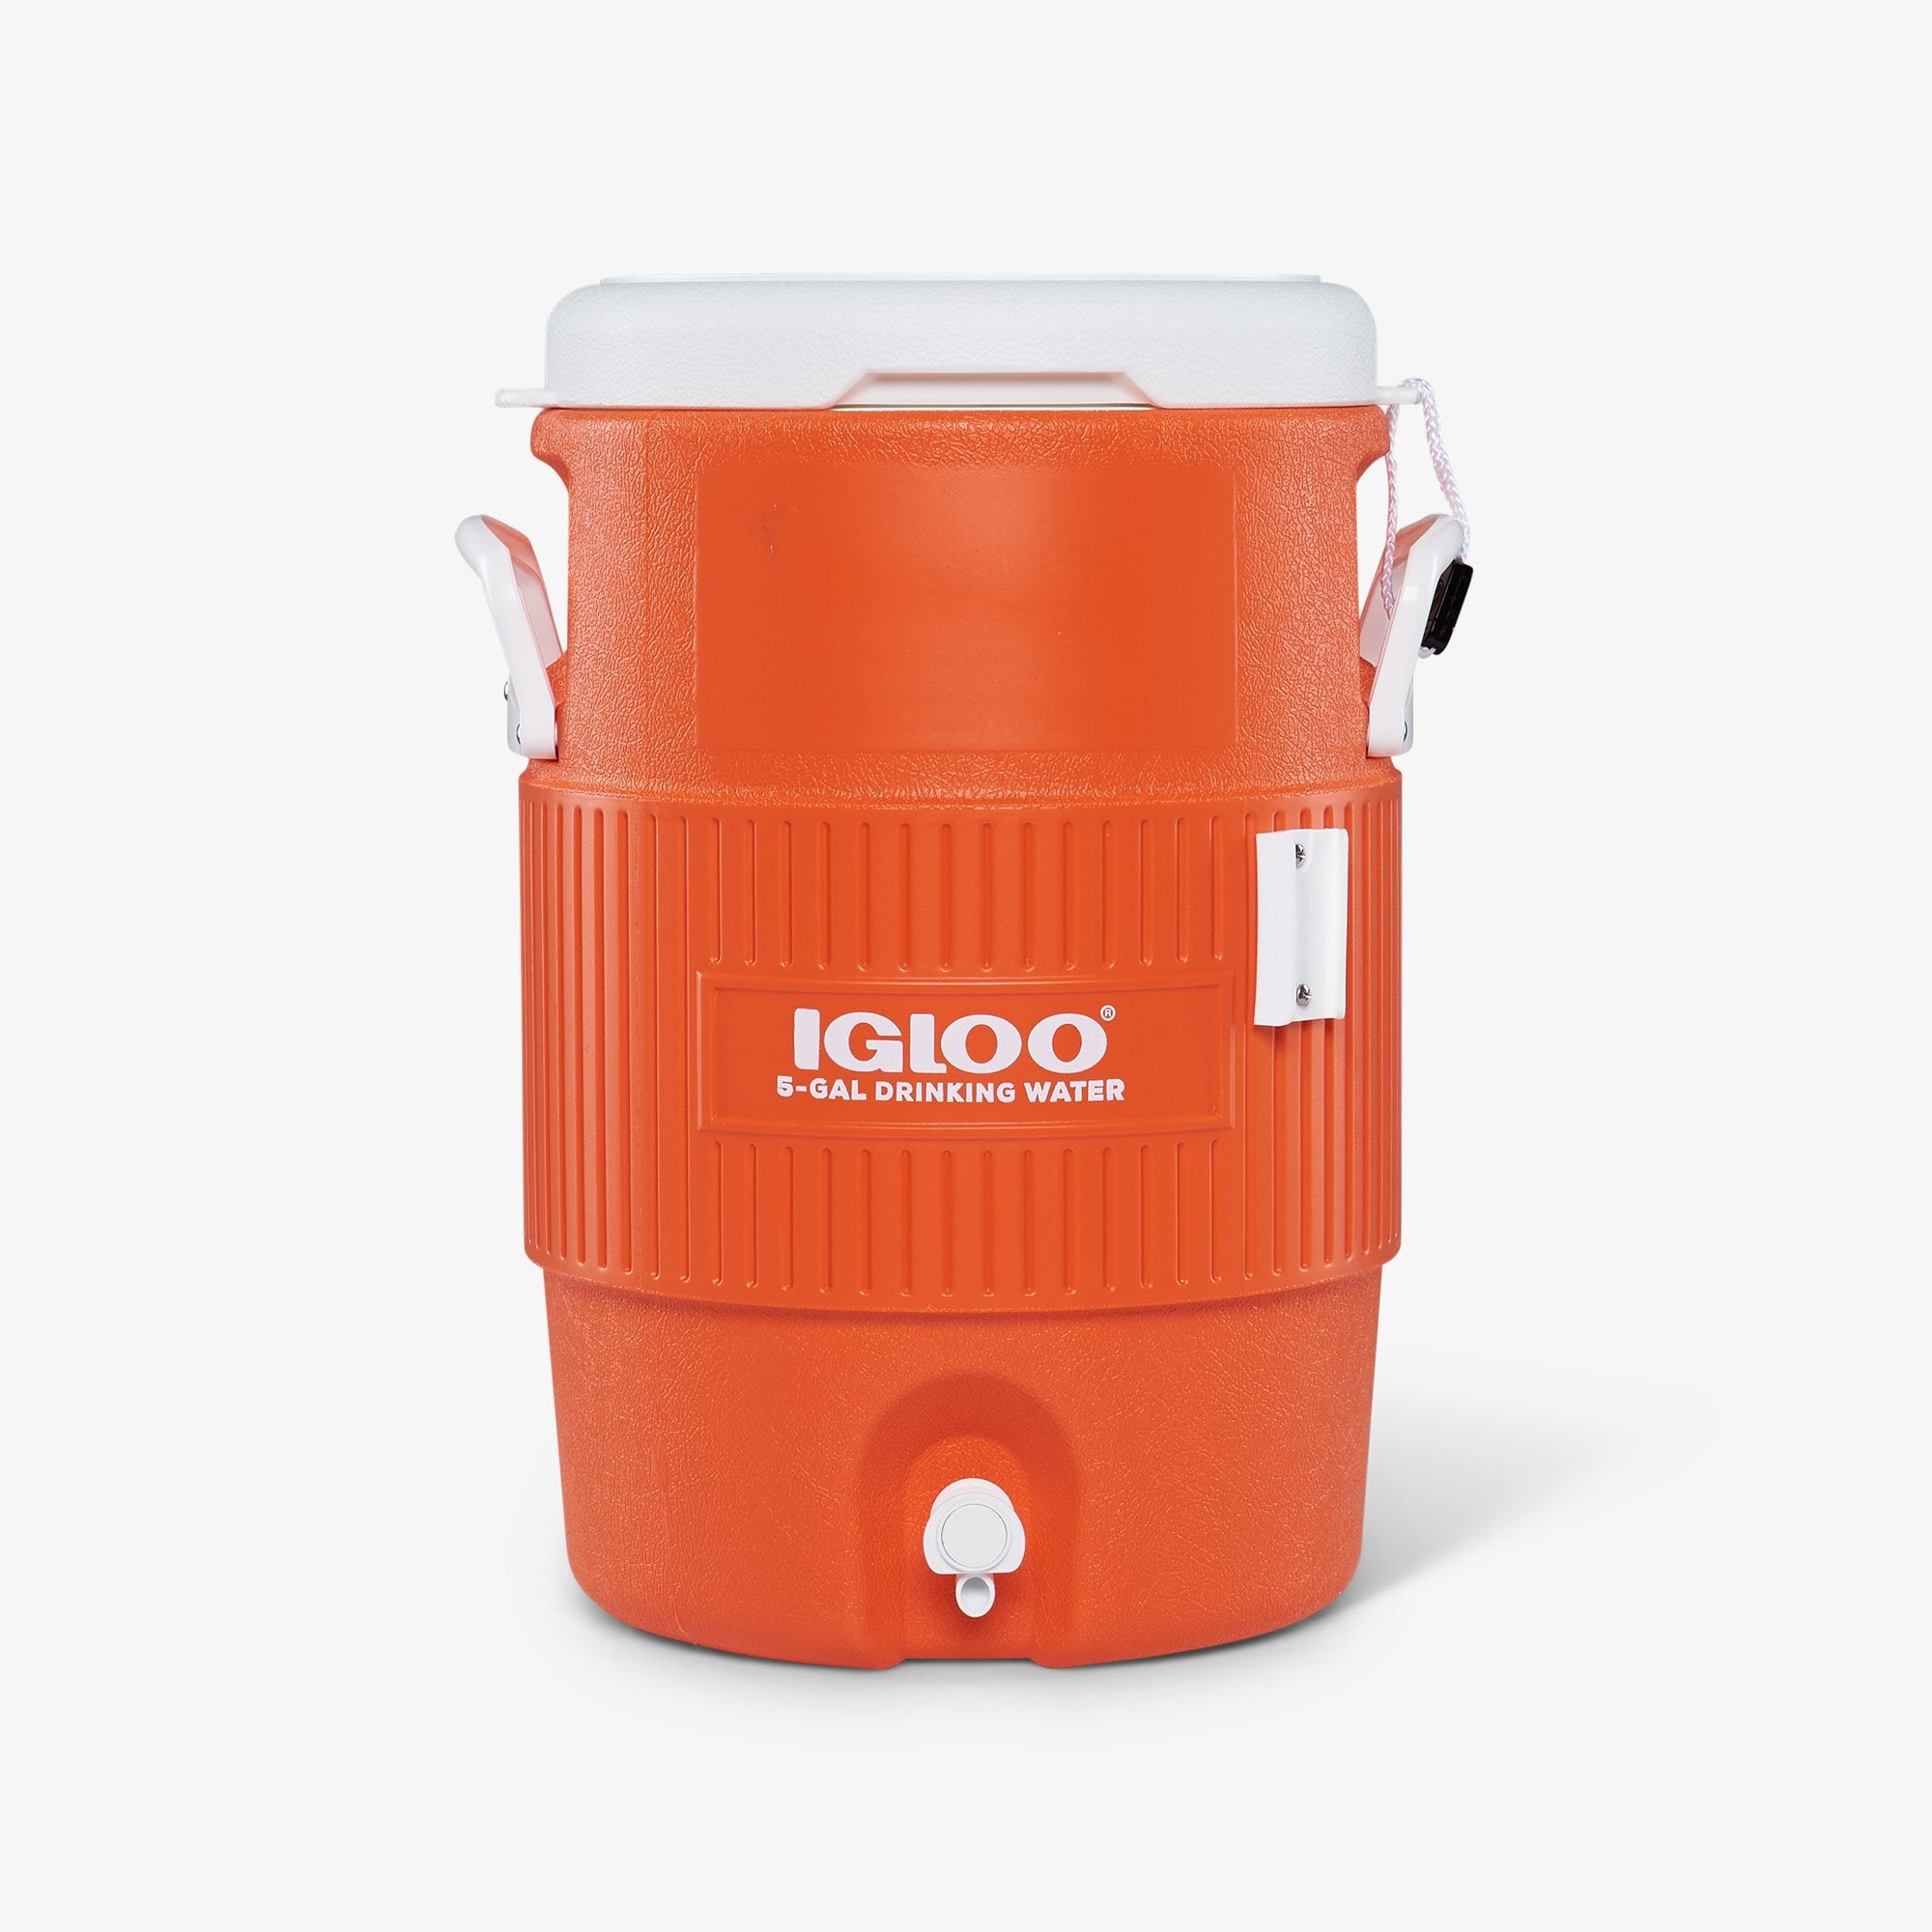 Igloo Water Jugs | 5 Gallon Seat Top Water Jug Without Cup Dispenser in Orange